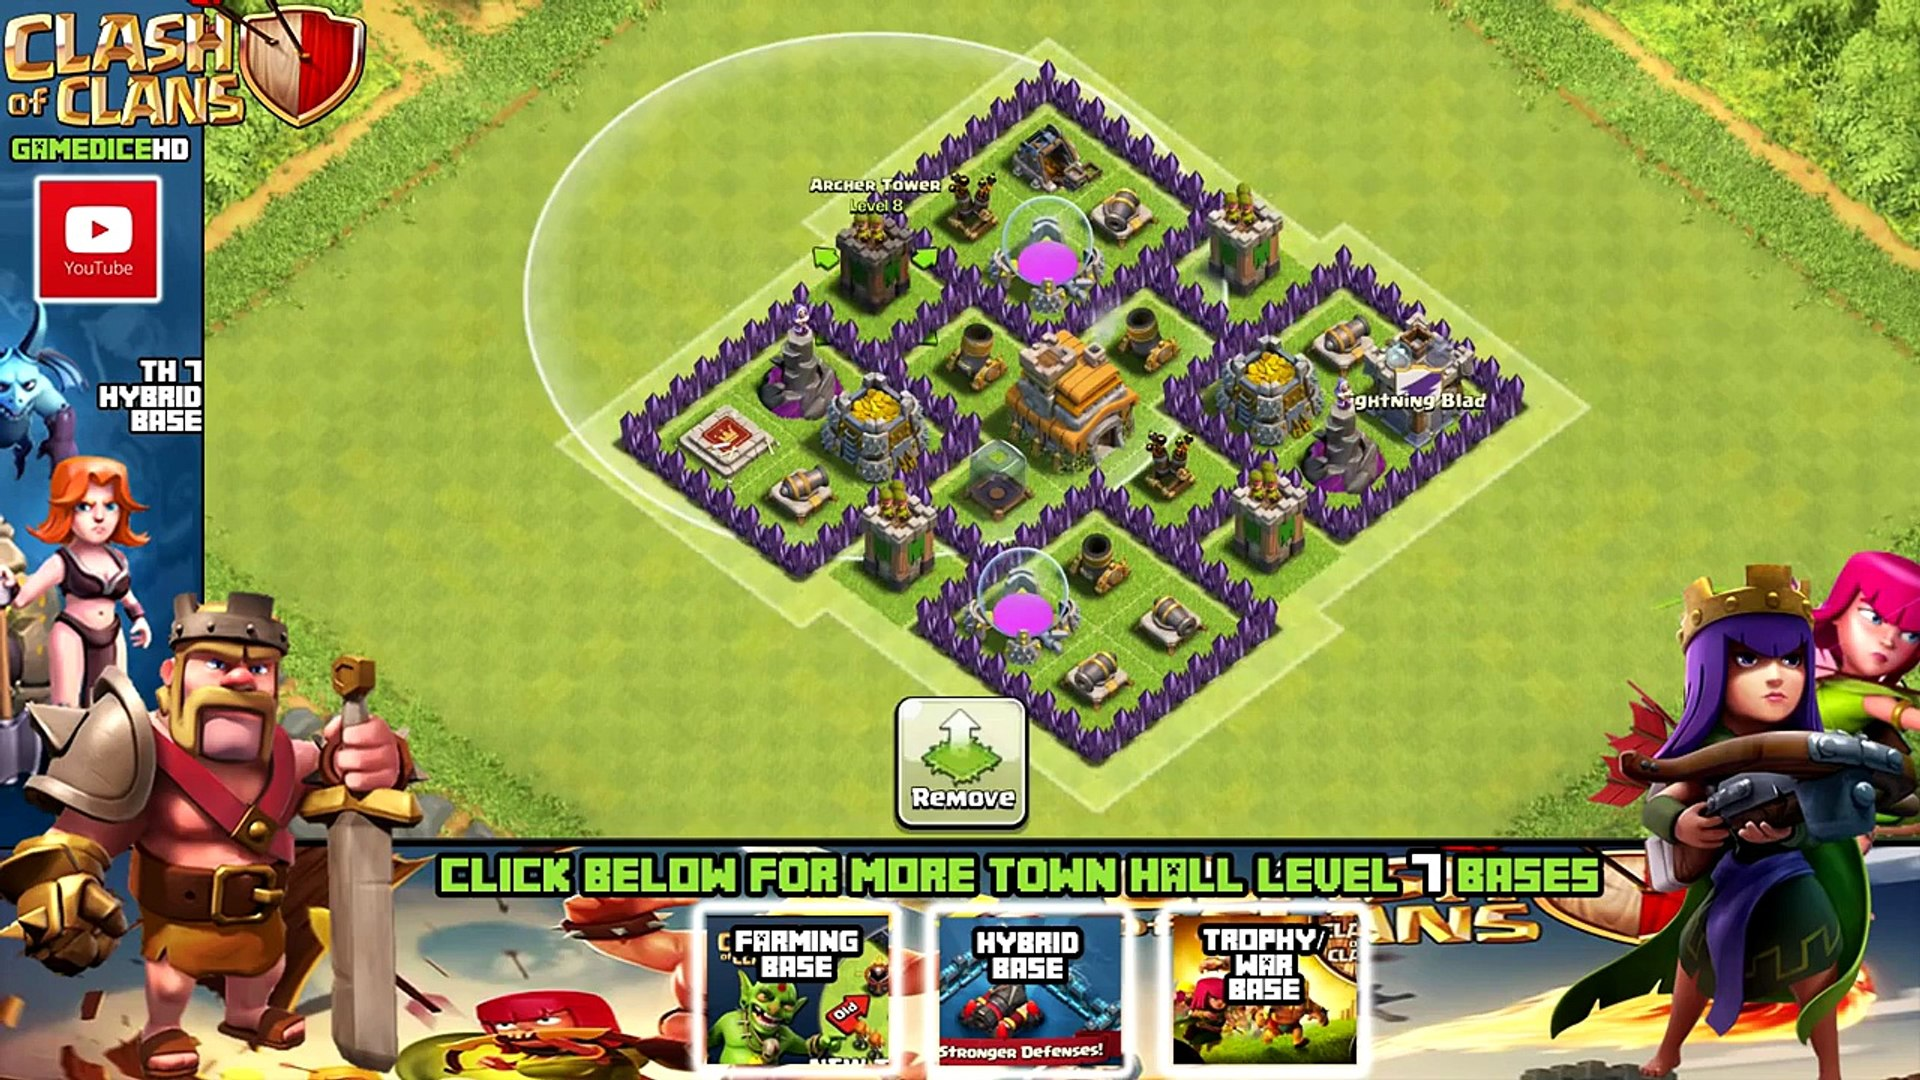 Clash Of Clans Town Hall 7 Defense Coc Th7 Best Hybrid Base Layout Defense Strategy Video Dailymotion